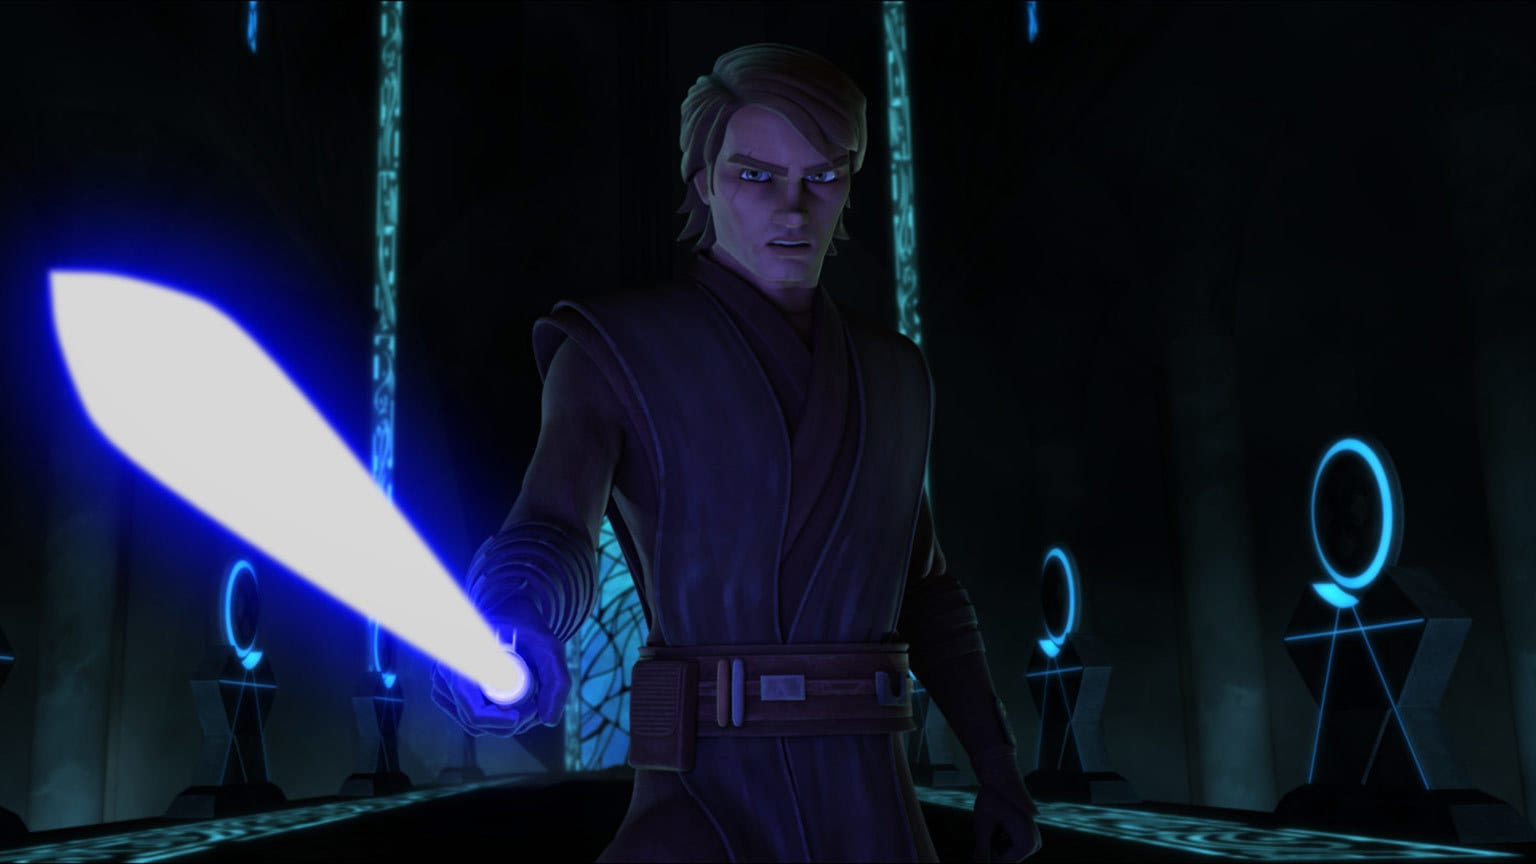 10 Essential Episodes of Star Wars: The Clone Wars to Watch on Disney+